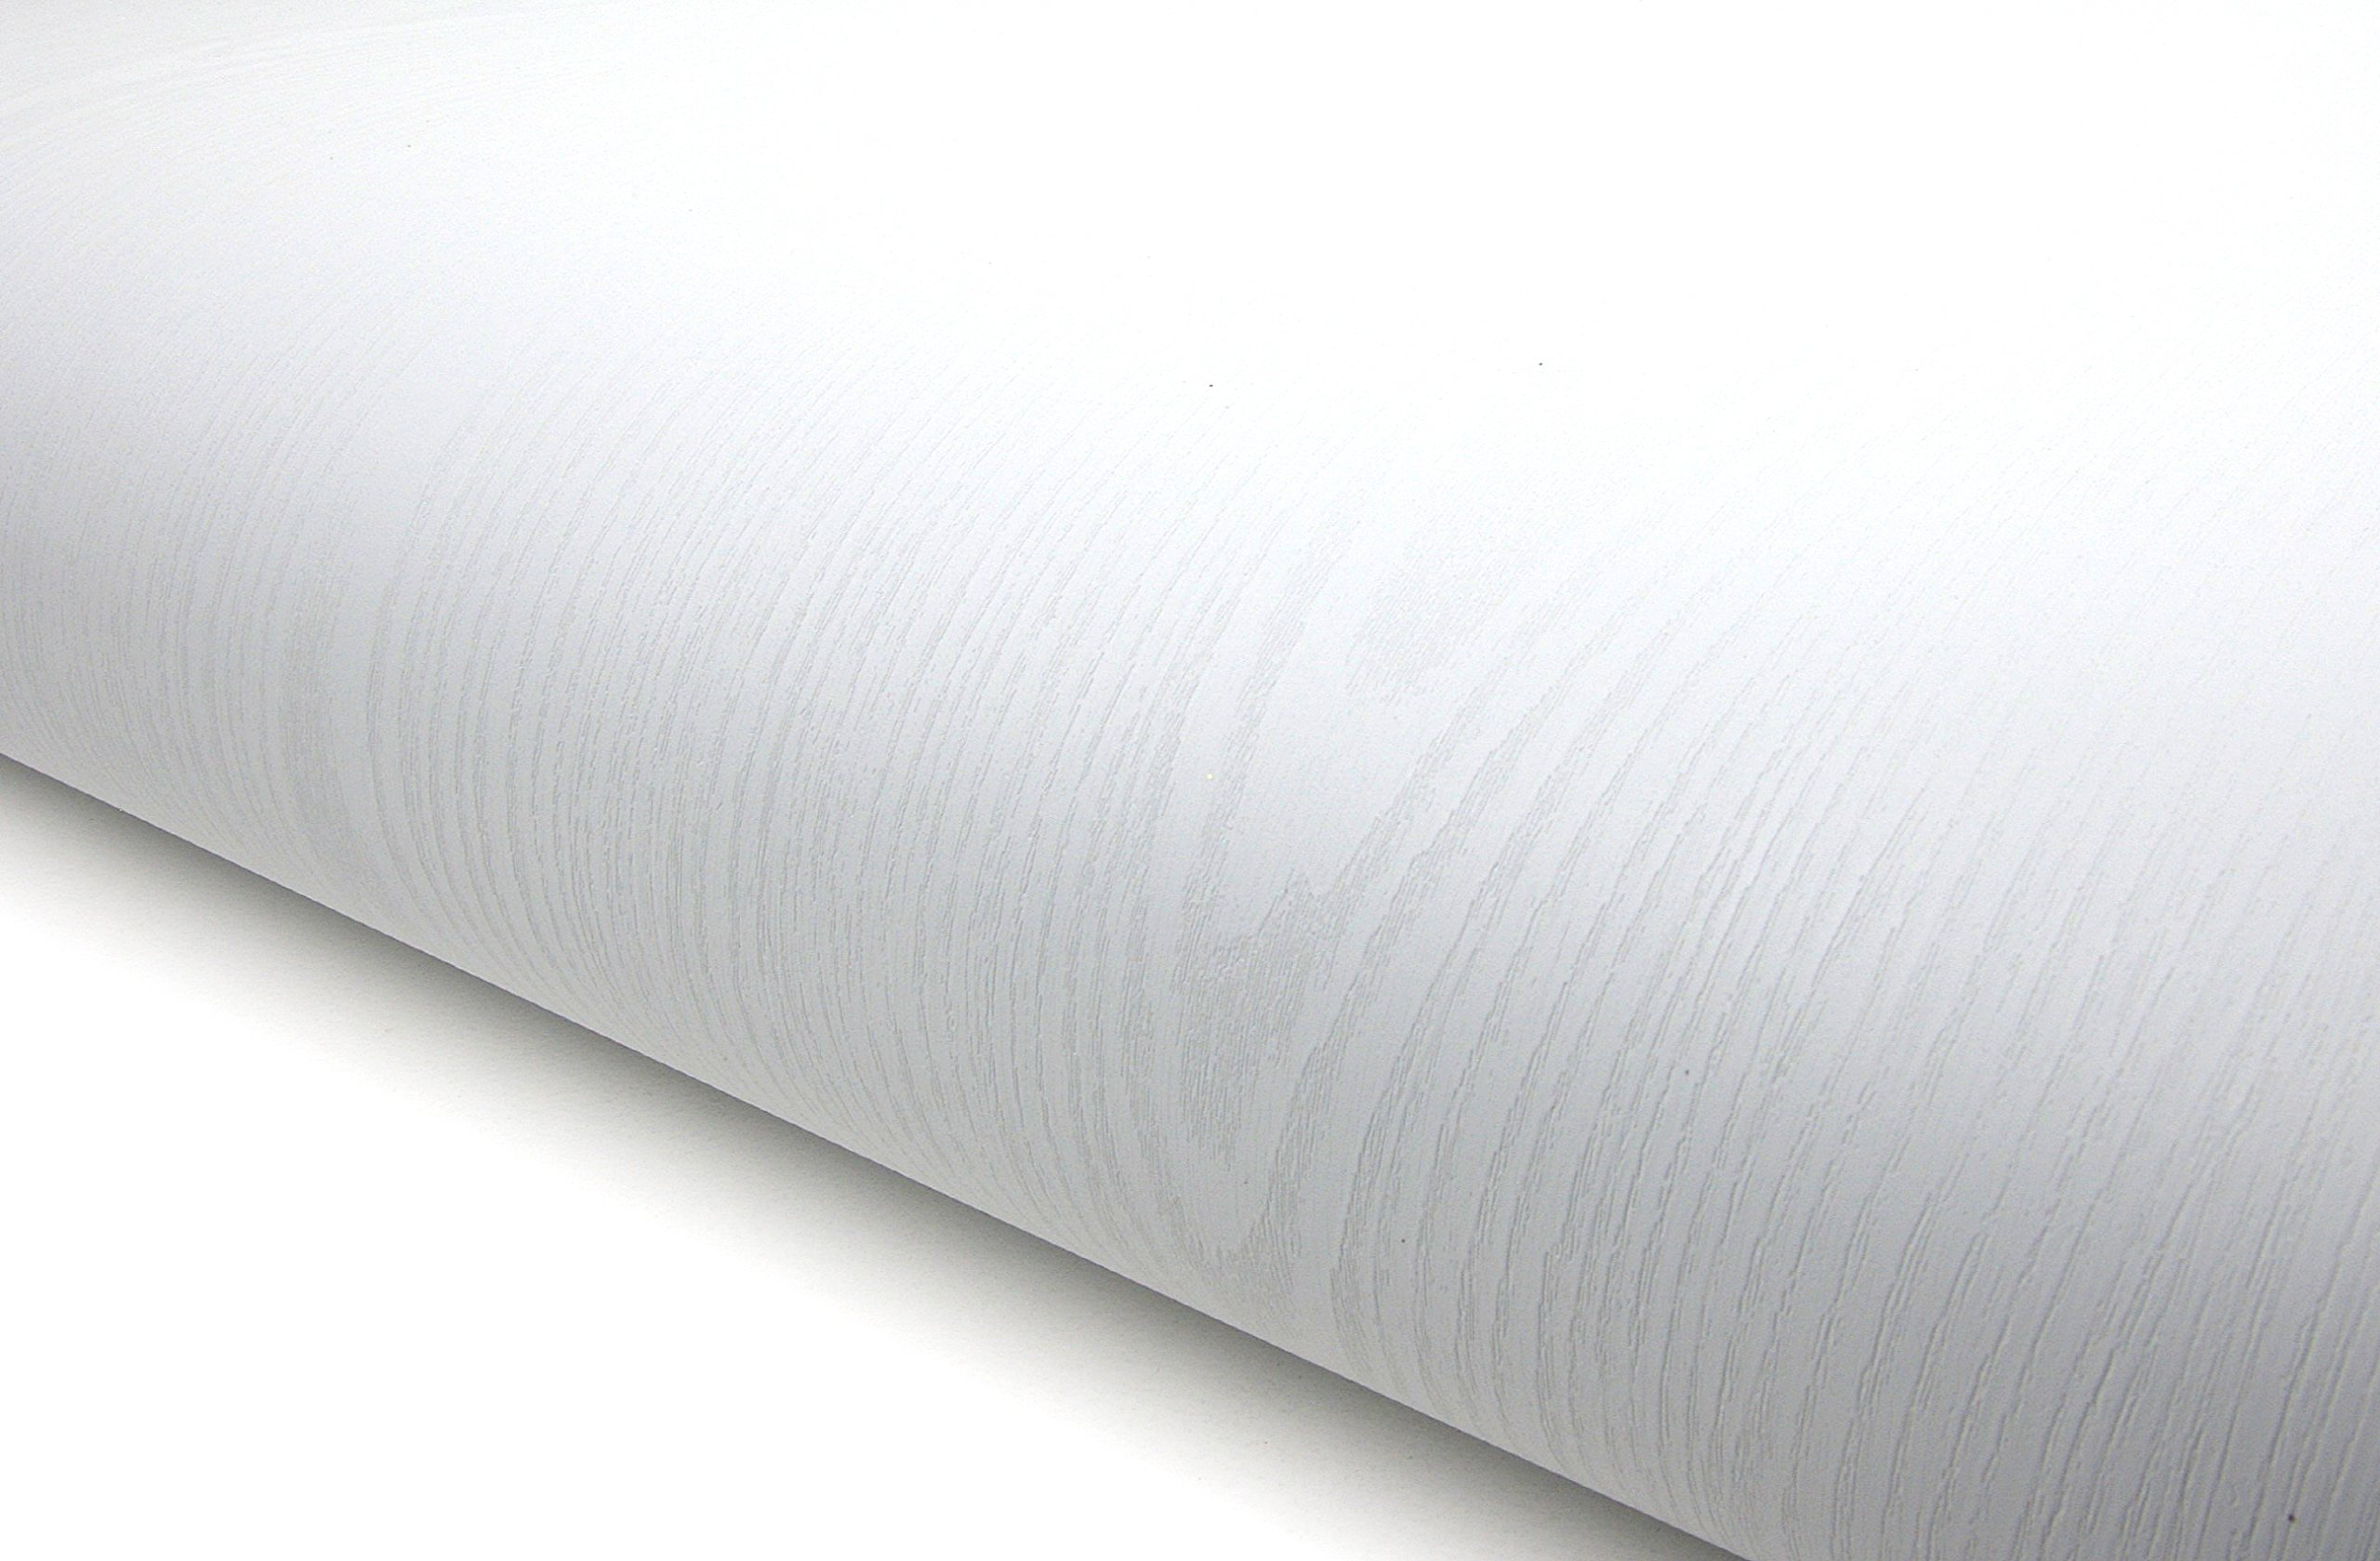 Wood Pattern Texture Contact Paper Film Vinyl Self Adhesive Peel-stick Removable (VBS868(white))